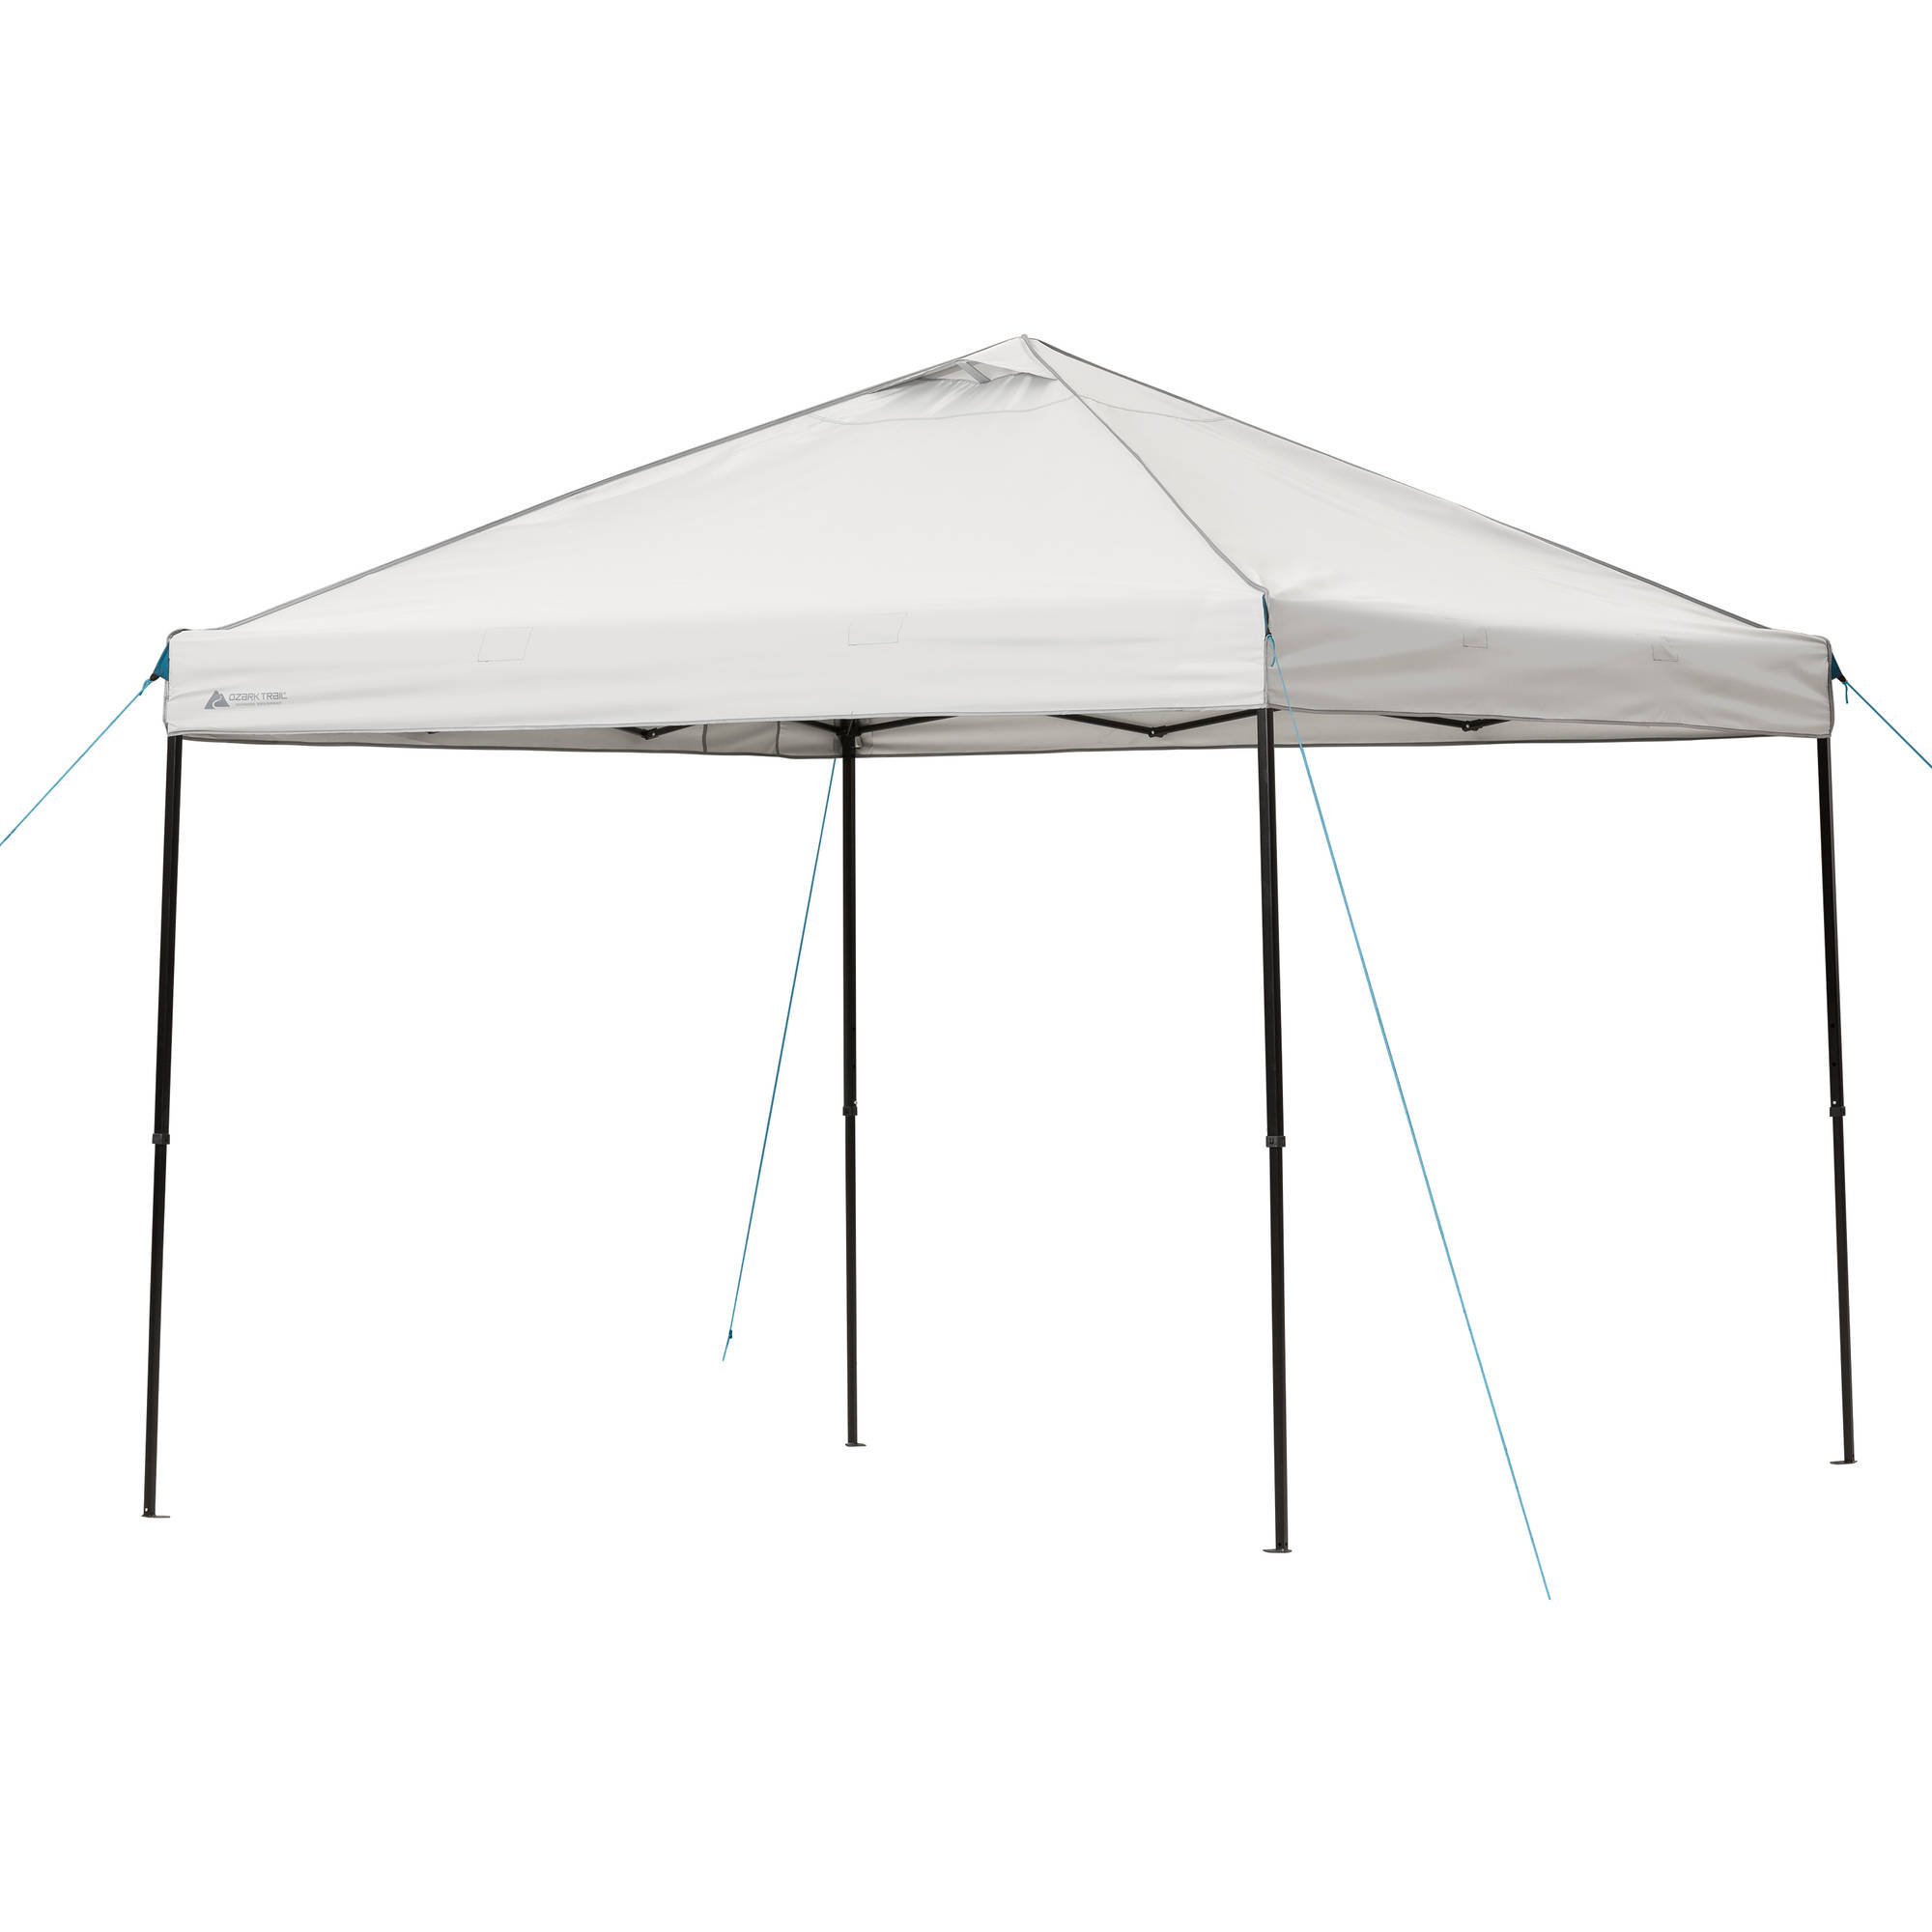 Ozark Trail 10u0027 x 10u0027 Instant Canopy  sc 1 st  Walmart & Ozark Trail 10u0027 x 10u0027 Instant Canopy with 4 Chairs Value Bundle ...